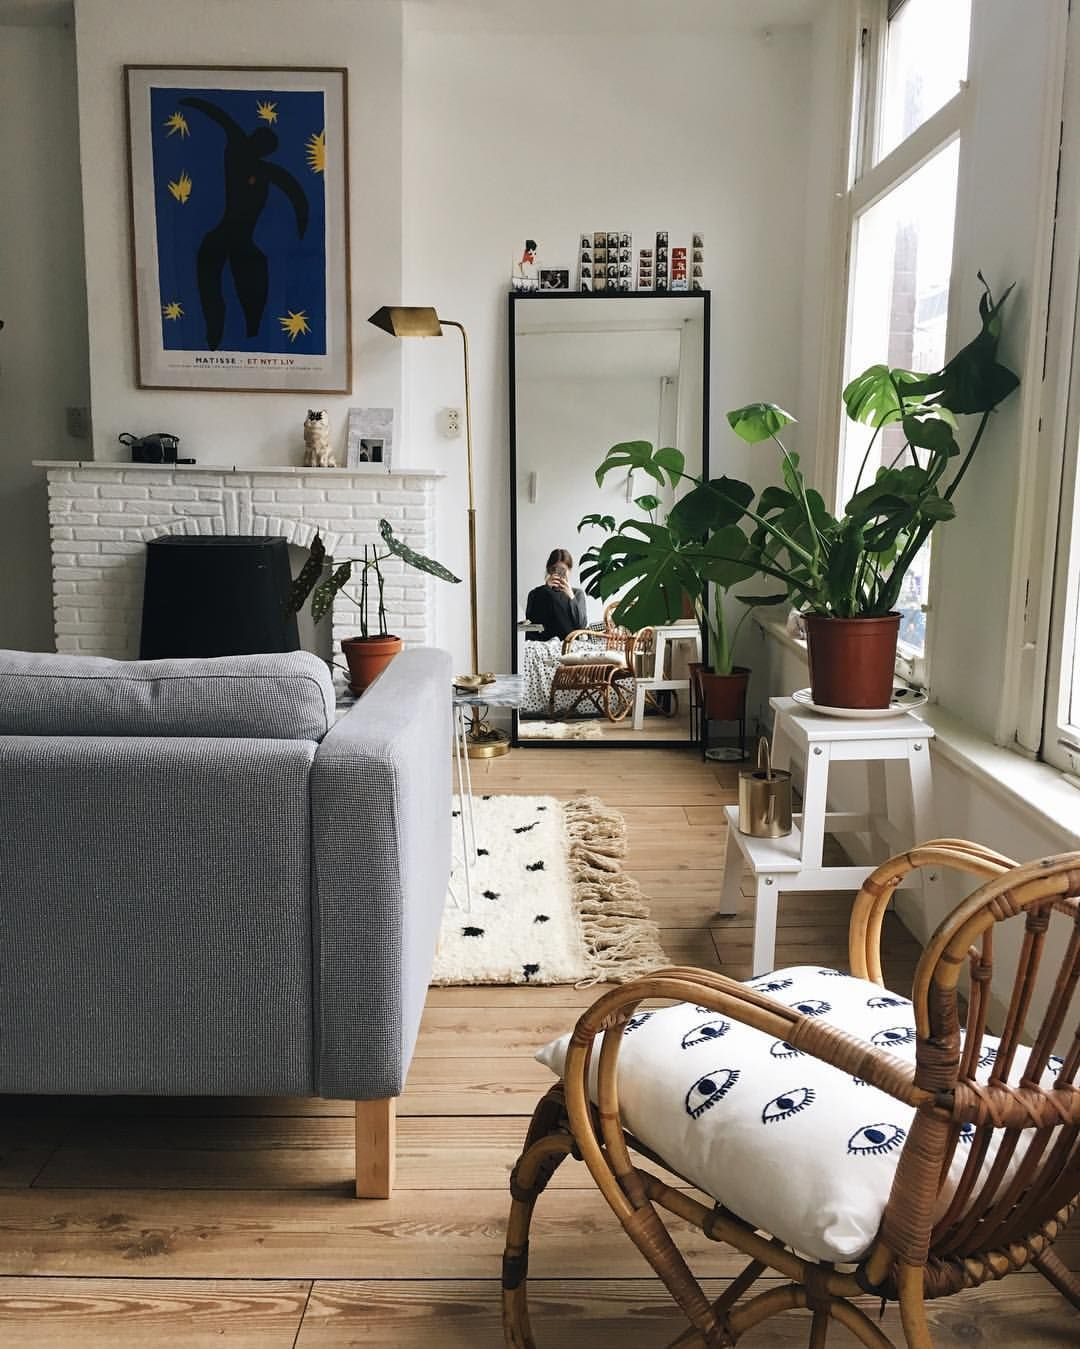 Studio Apartment Living Room: Home // Studio, Tiny Apartment, Bohemian, Matisse